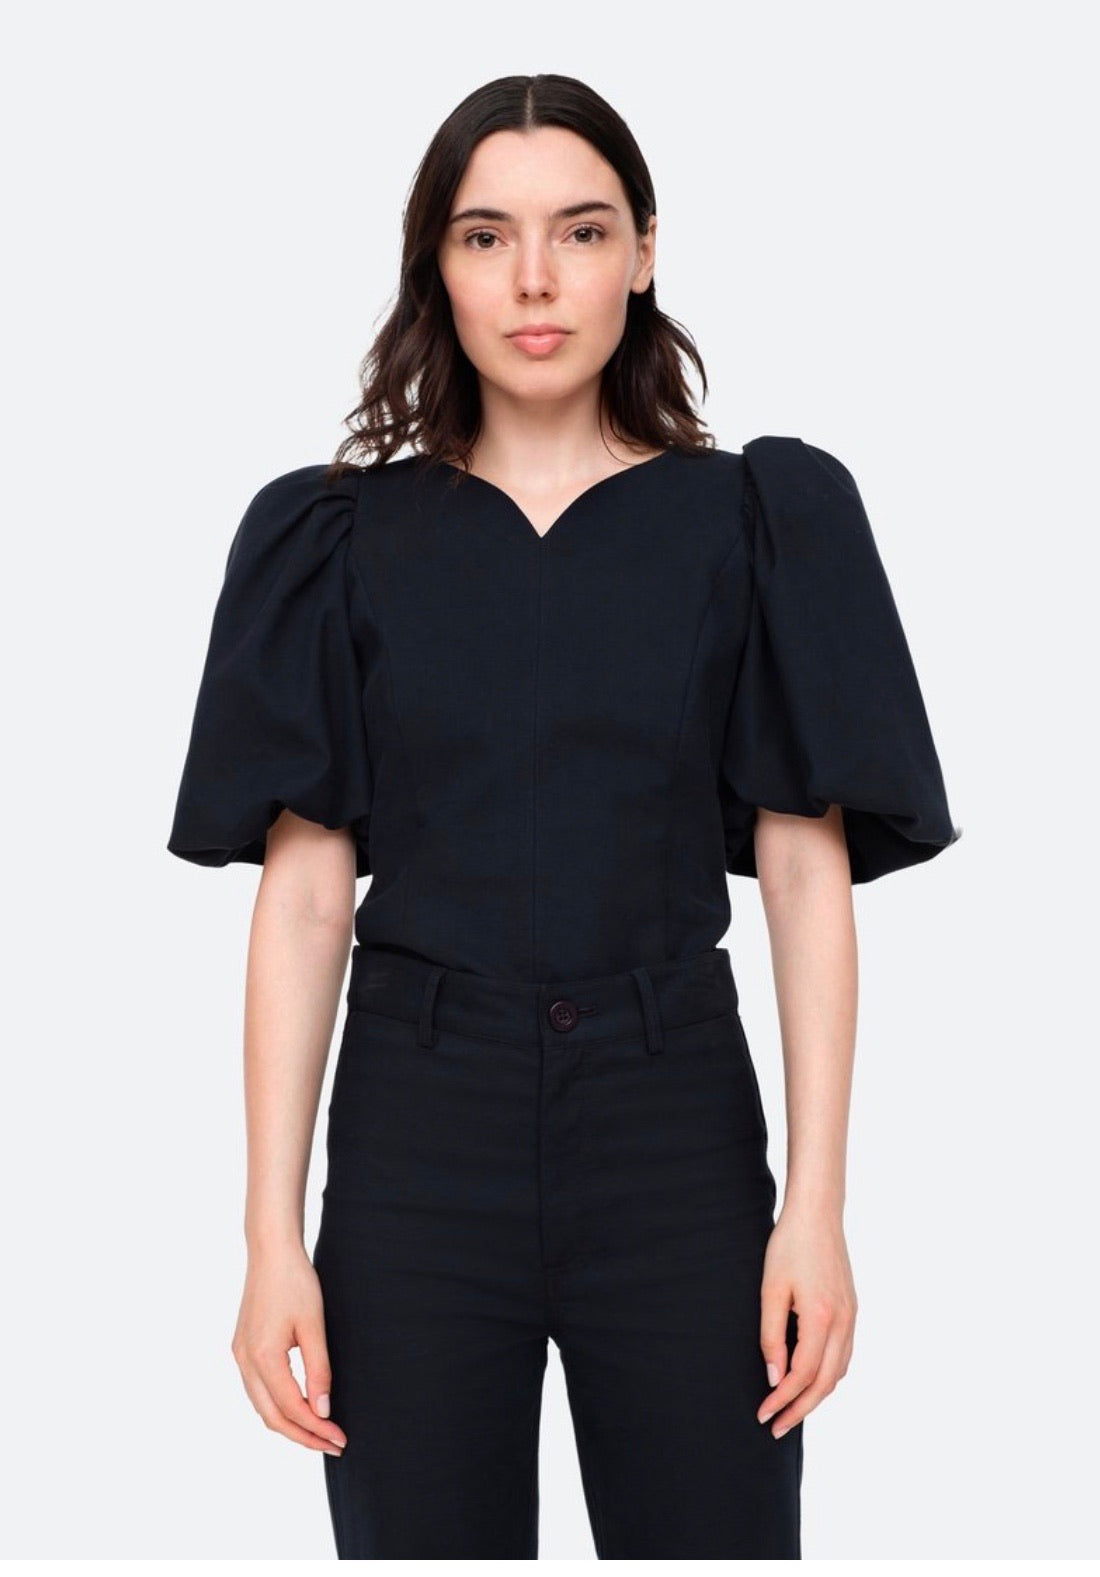 Bubble Sleeve Top In Black